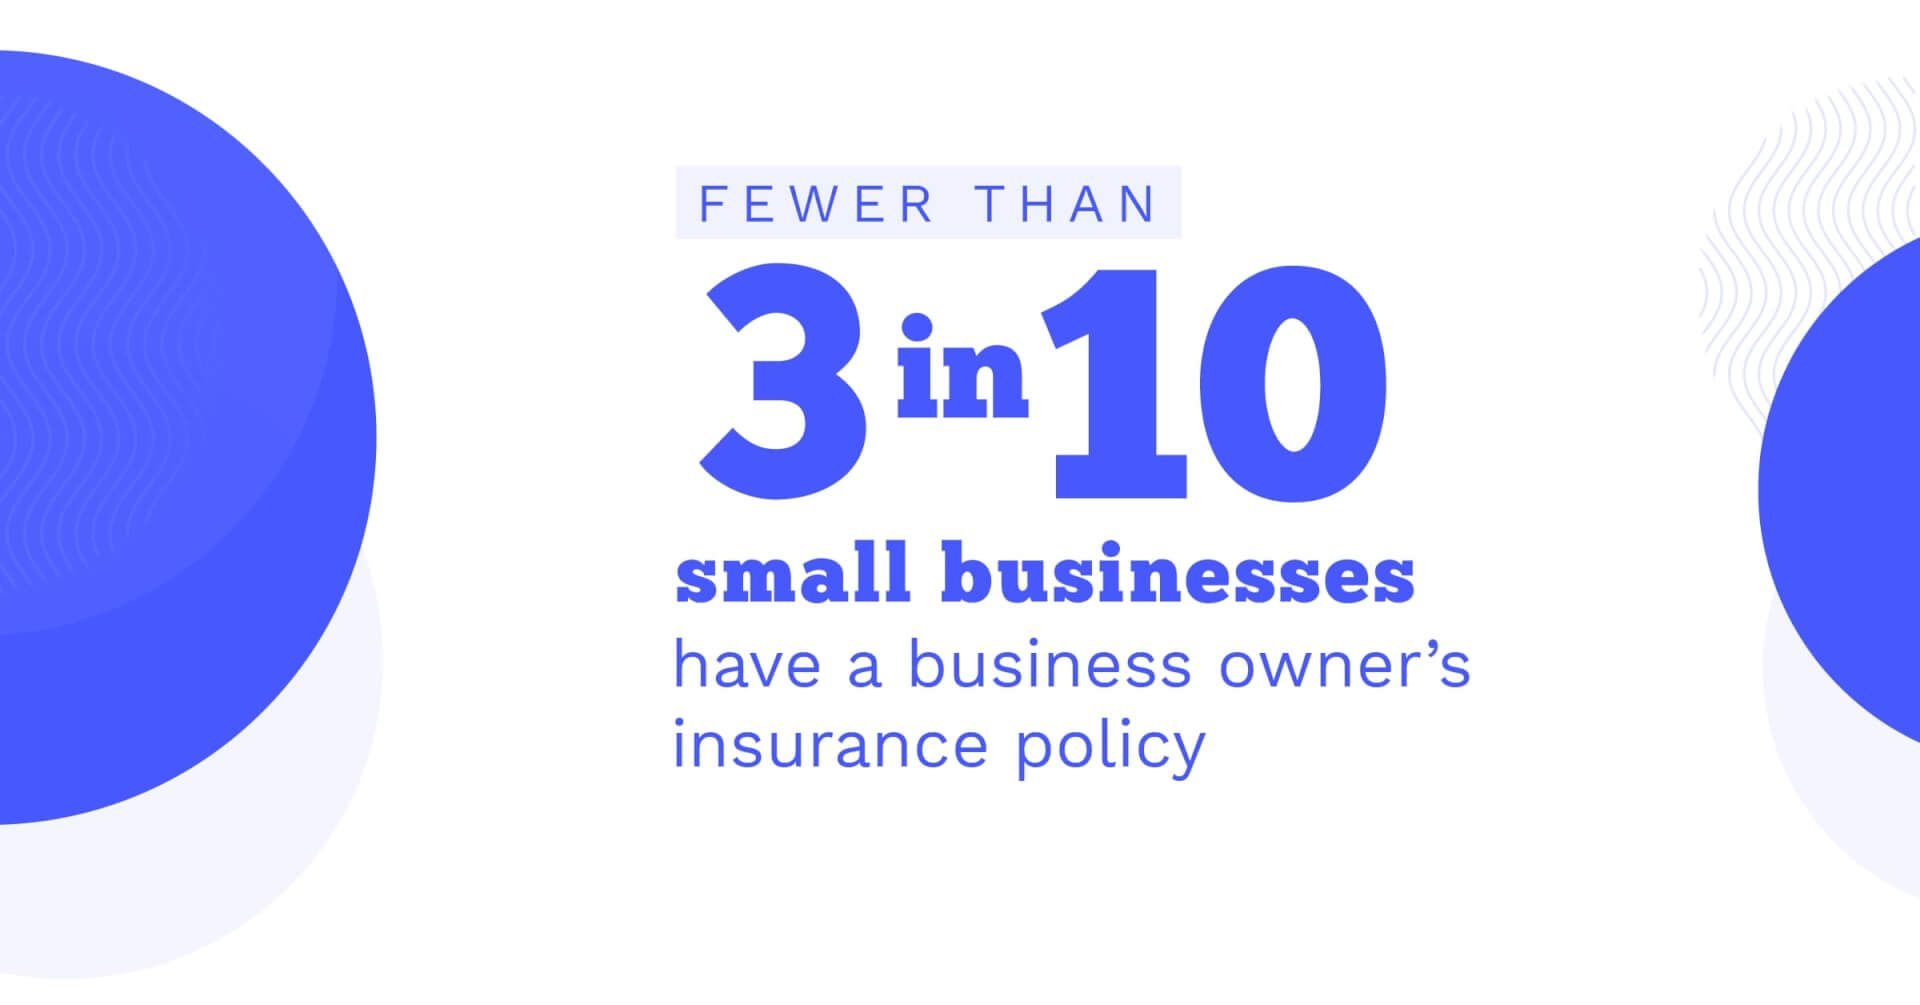 Social Business - Fewer than 3-in-10 Small Businesses Have a Business Owners's Insurance Policy